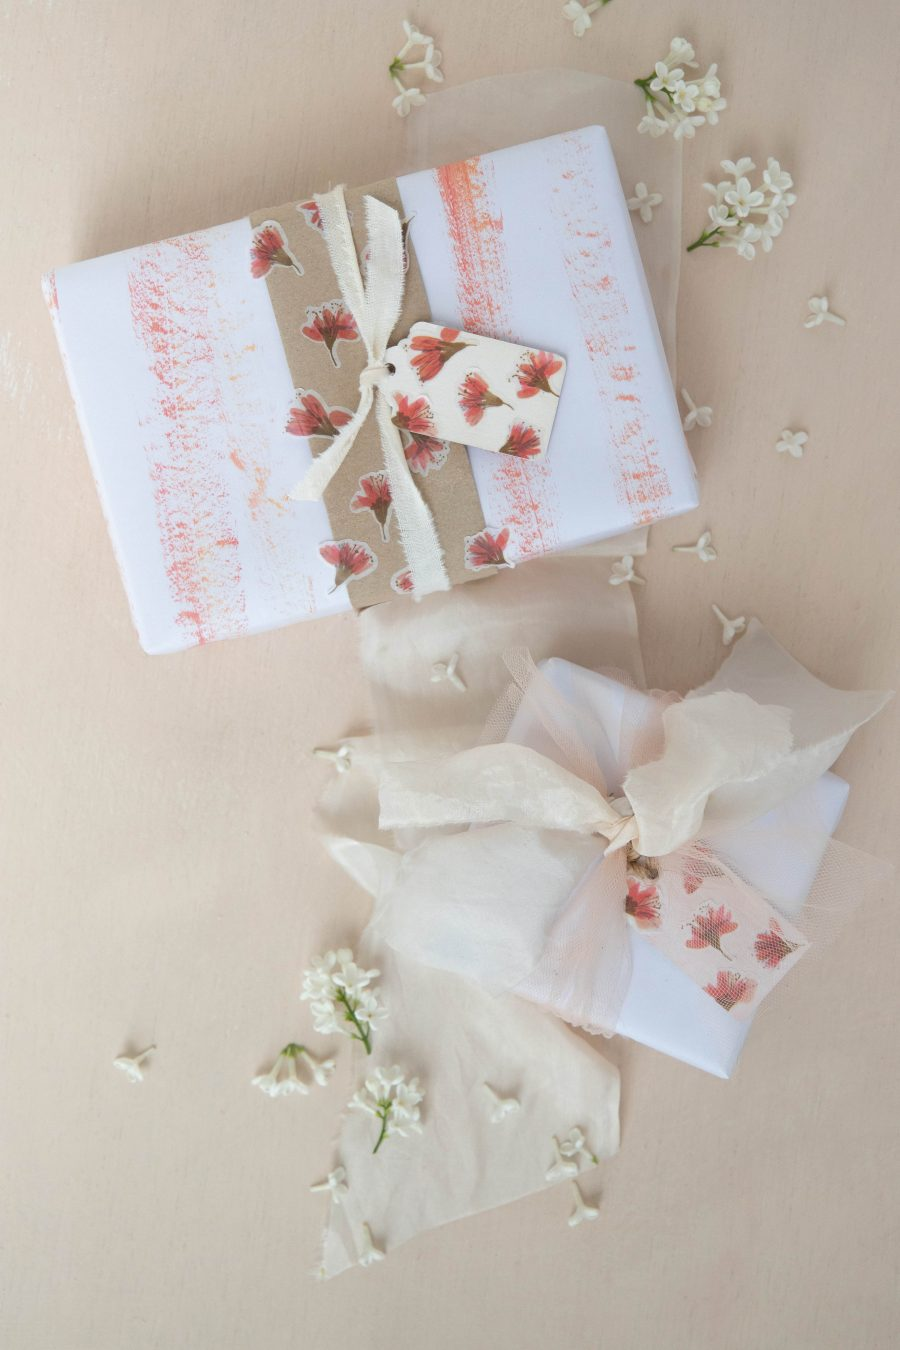 Blossom_washi_tape_gift_wrapping